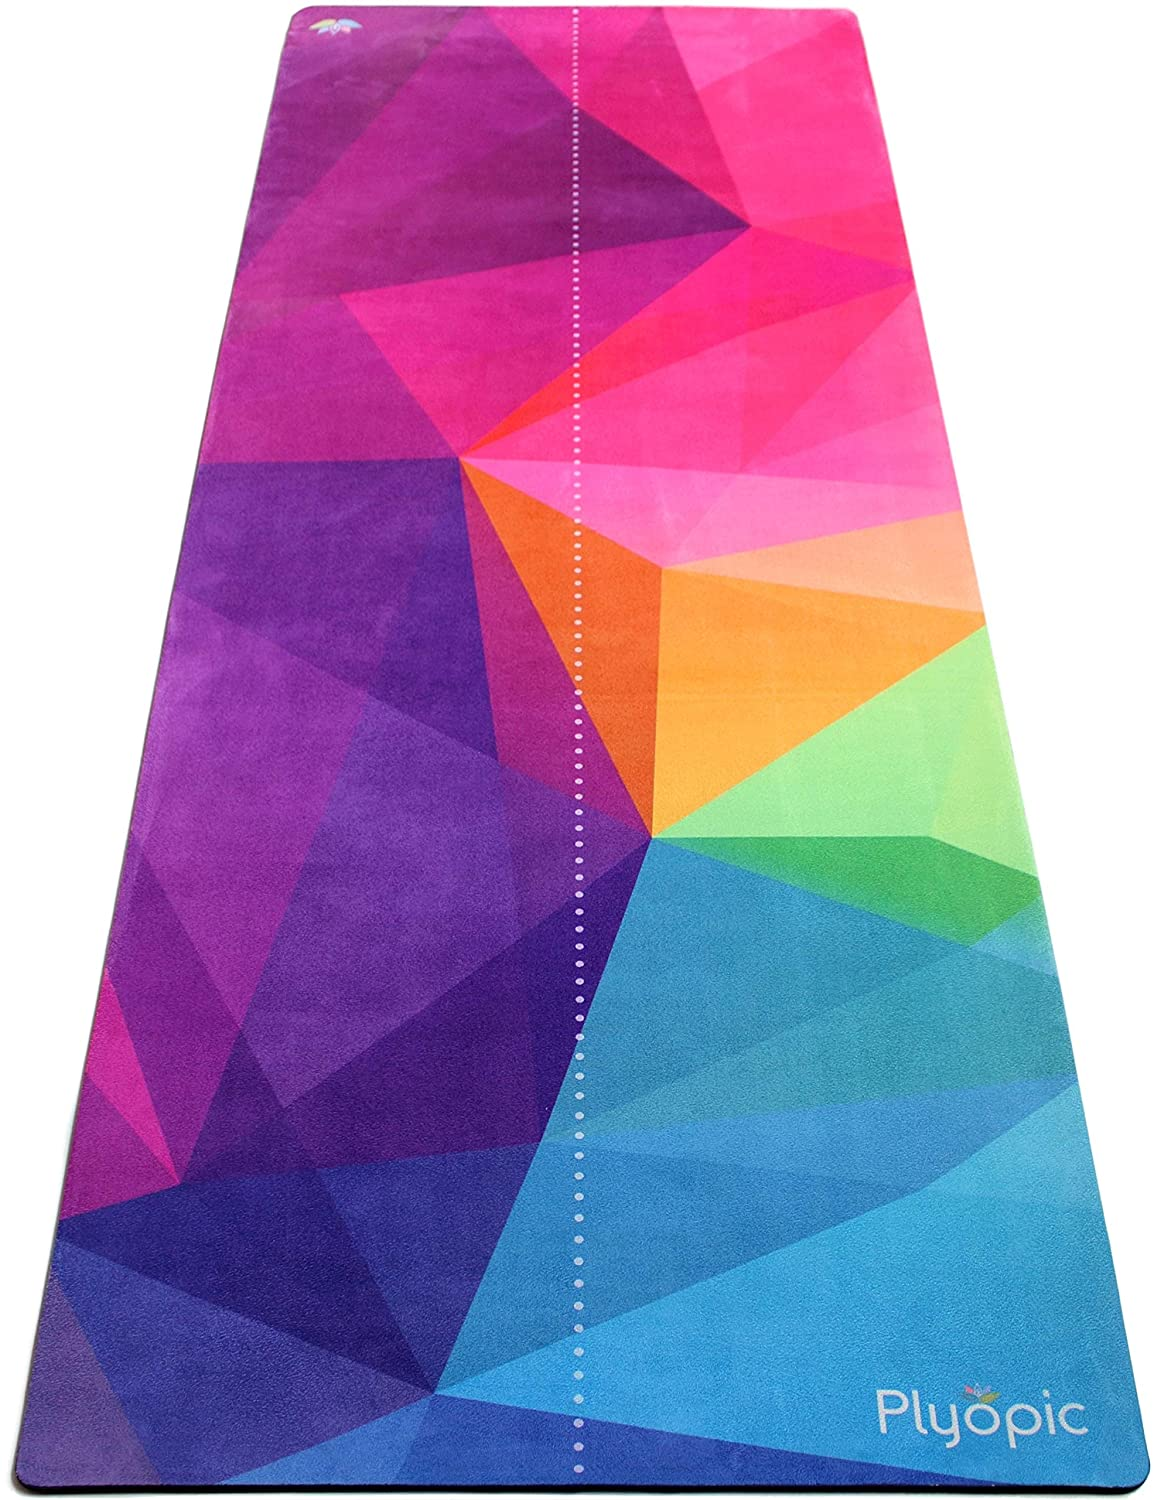 Plyopic Yoga Mat Towel